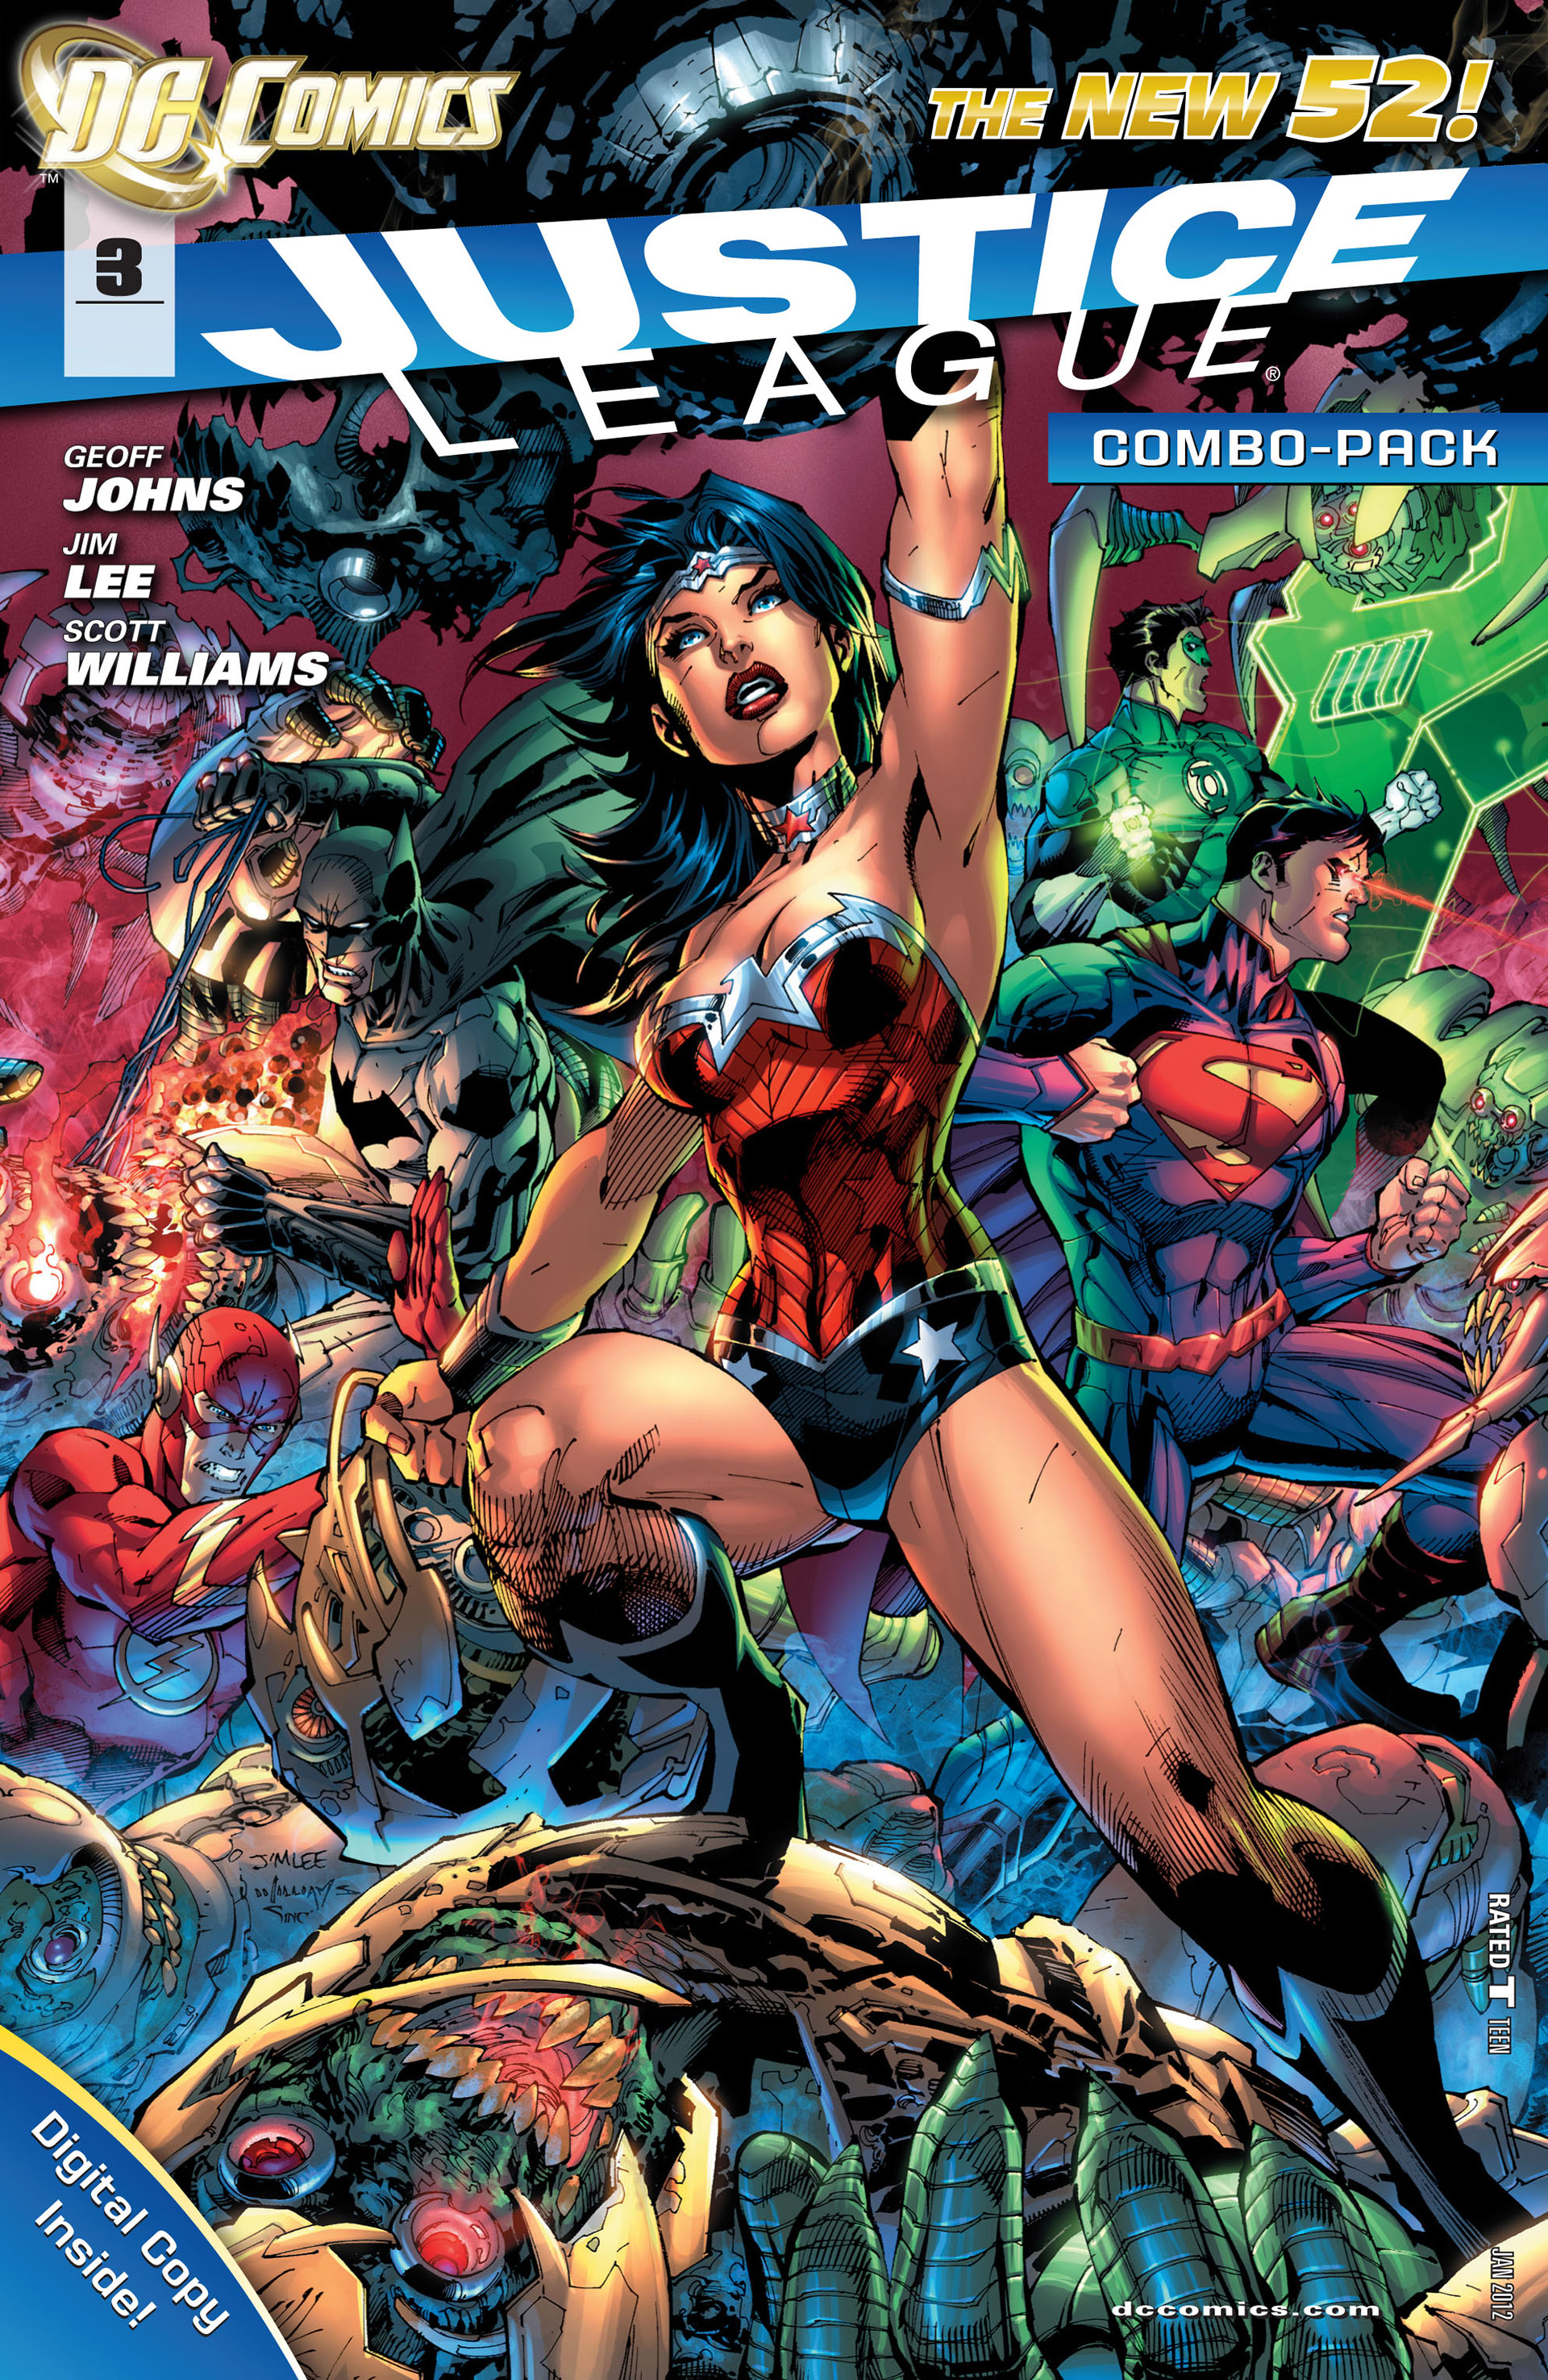 Justice League Vol 2 3 Combo-Pack Edition.jpg